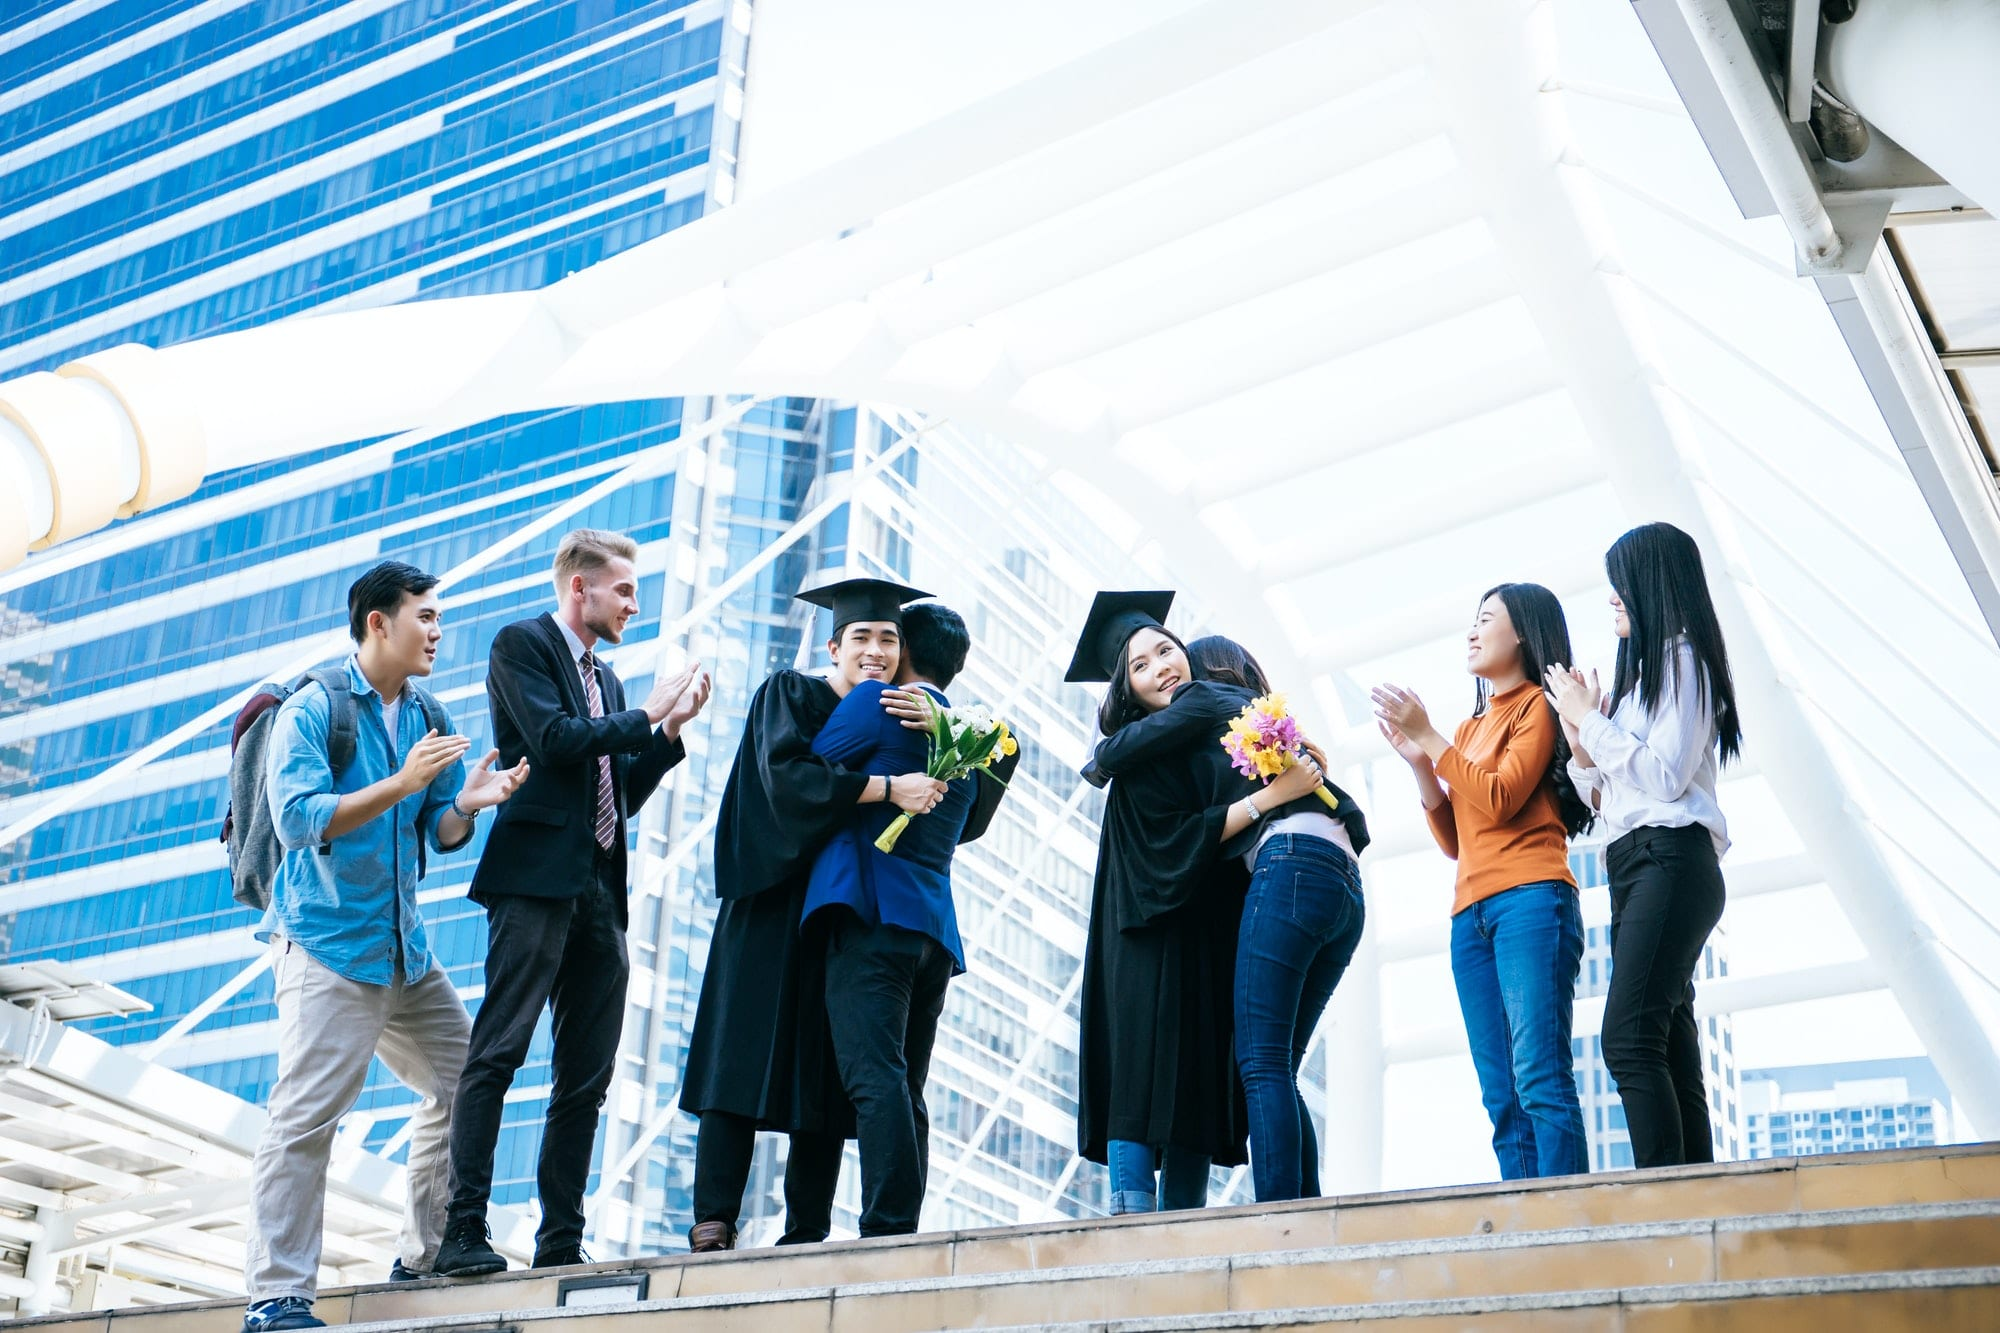 Asian students graduate being congratulated by their parent at graduation ceremony